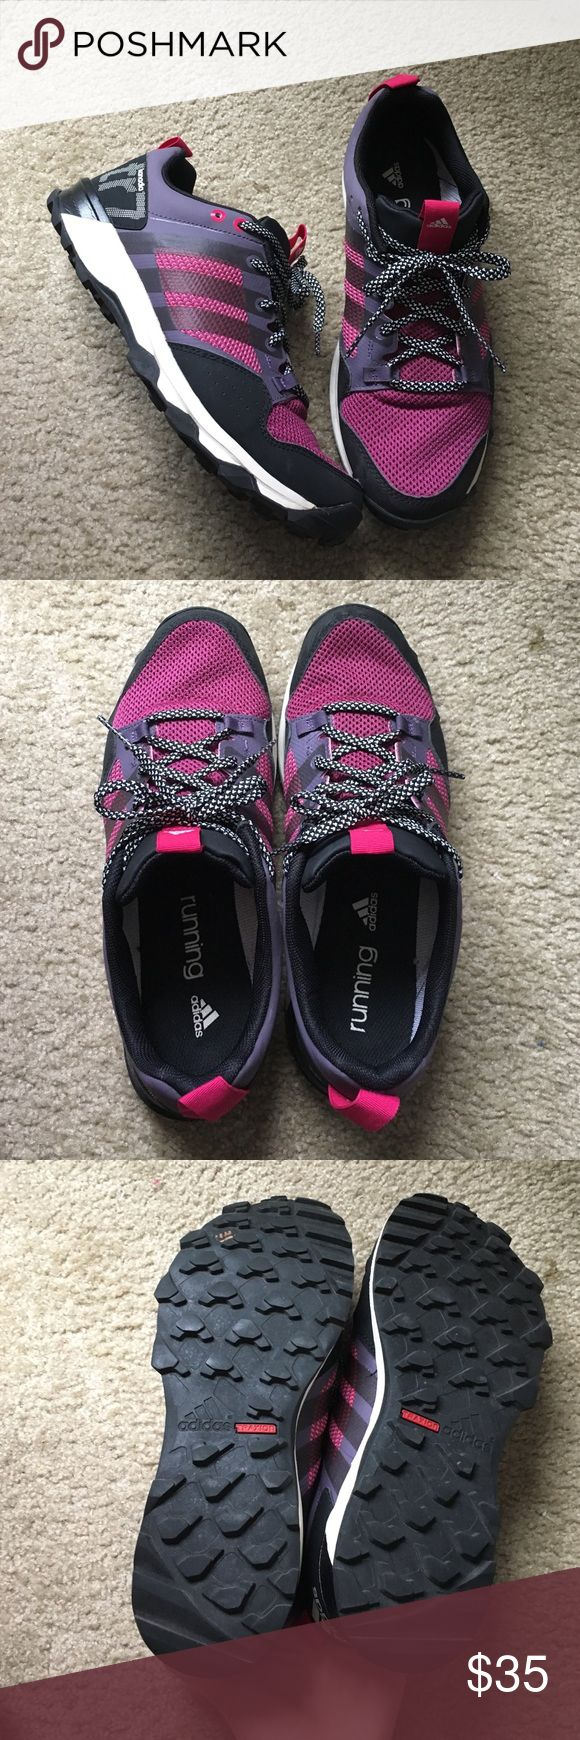 Almost New Adidas Running Shoes Worn twice. Adidas kanadia running shoe. Excellent condition. Adidas Shoes Athletic Shoes